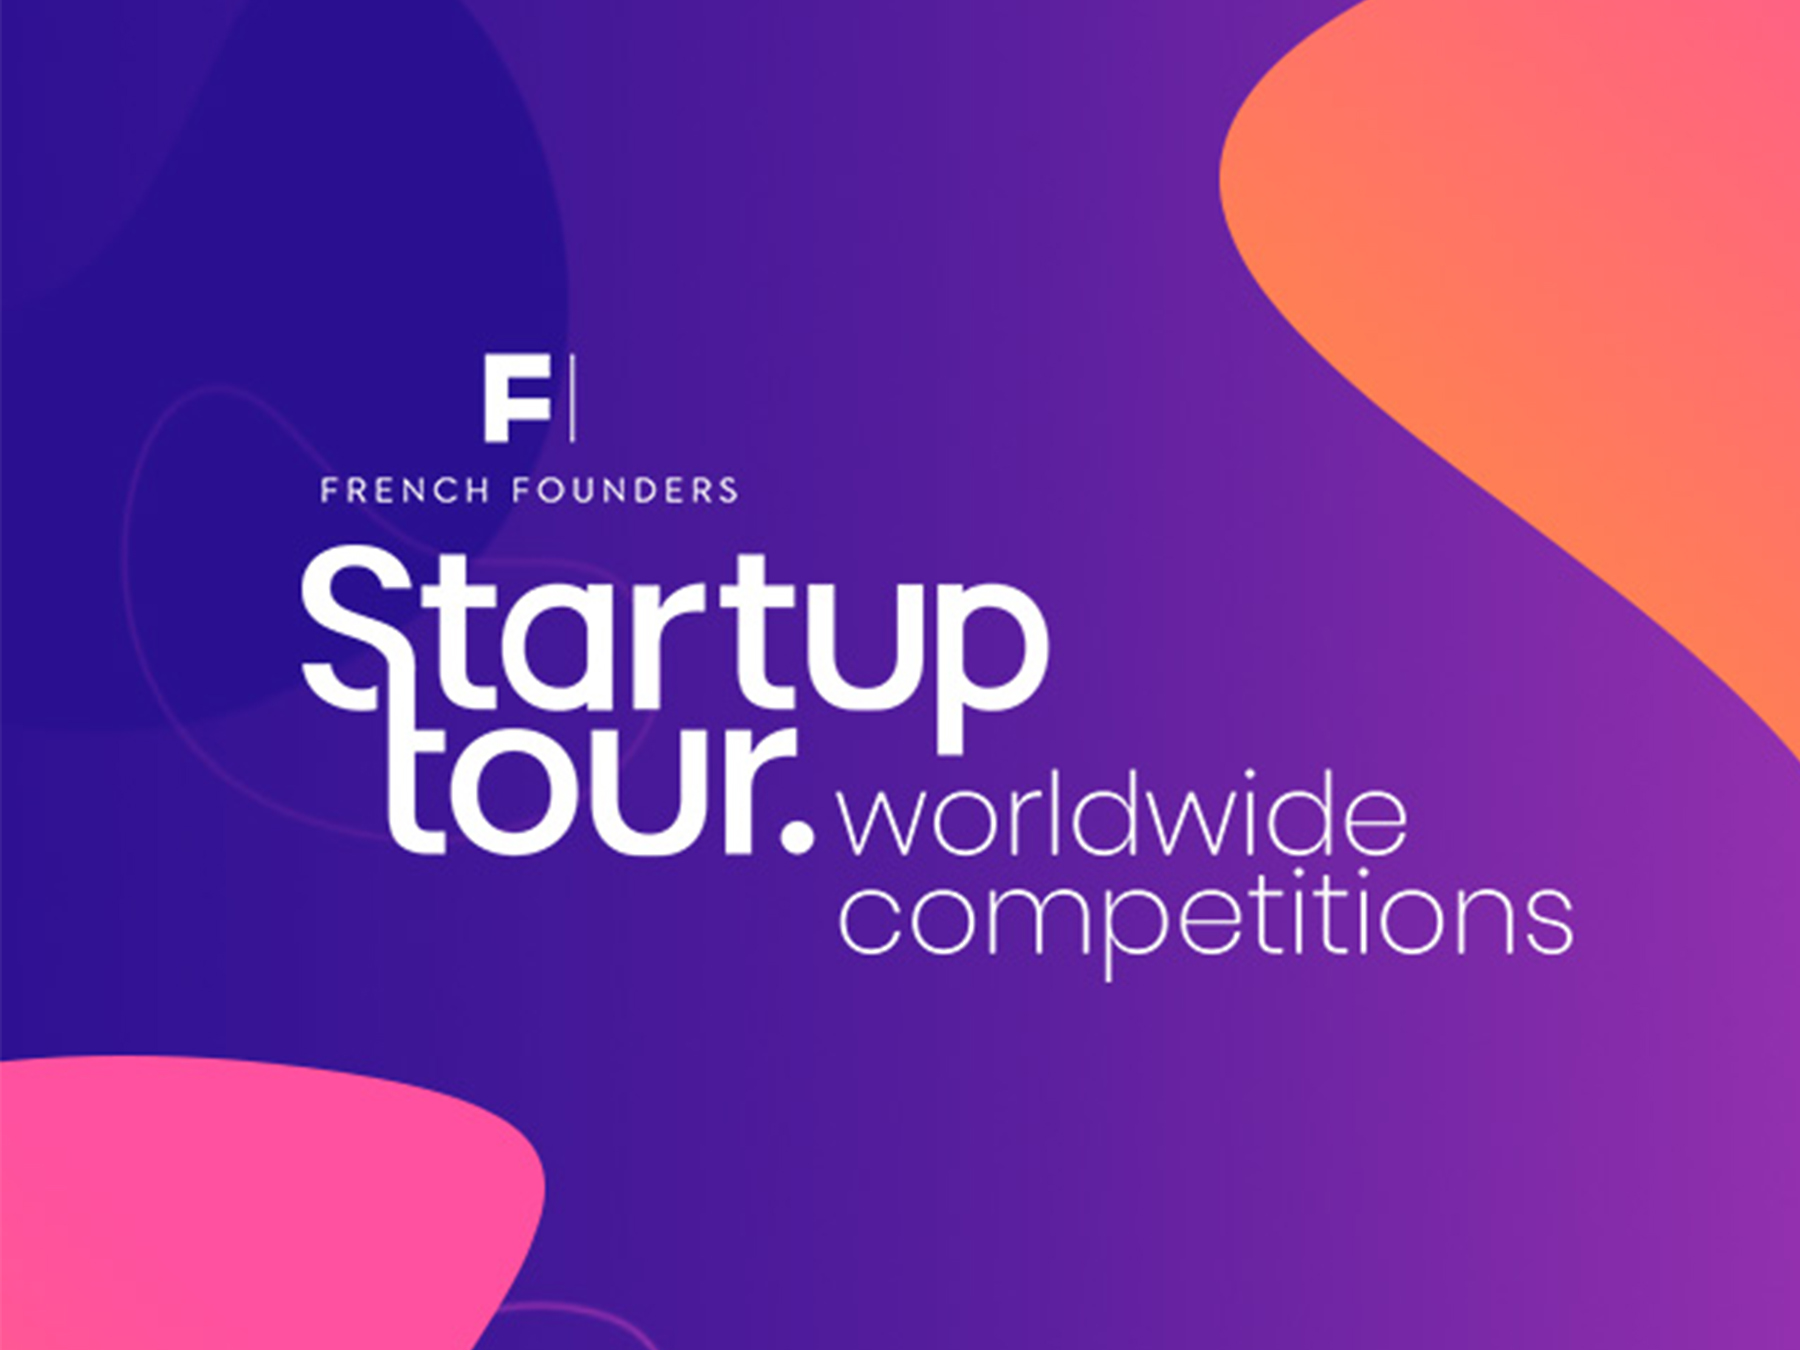 Startup Tour Worldwide - French Founders